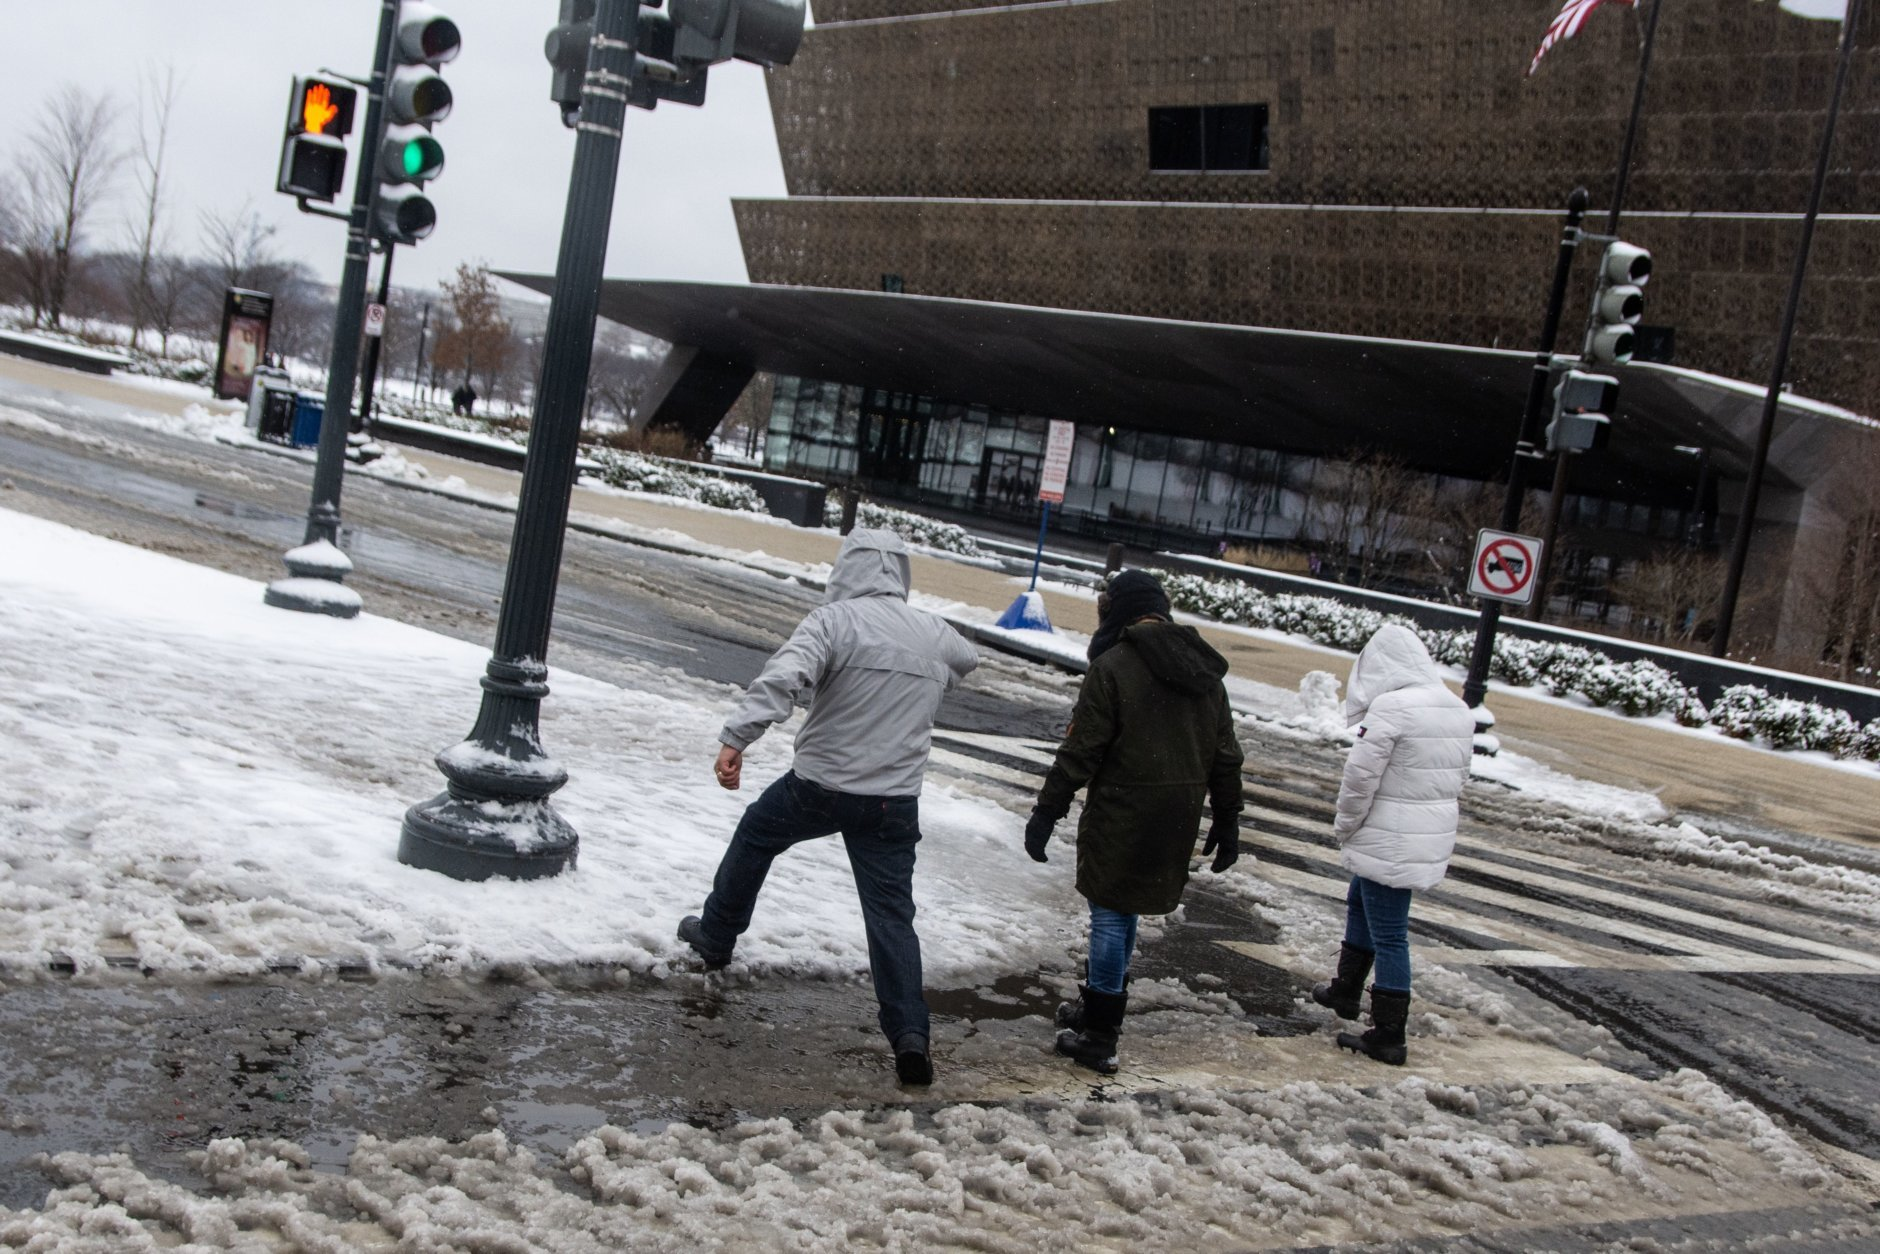 With a changeover to rain on Wednesday afternoon, half-melted slush pooled on most street corners along the National Mall, making life difficult for anybody hoping to keep their shoes dry. (WTOP/Alejandro Alvarez)